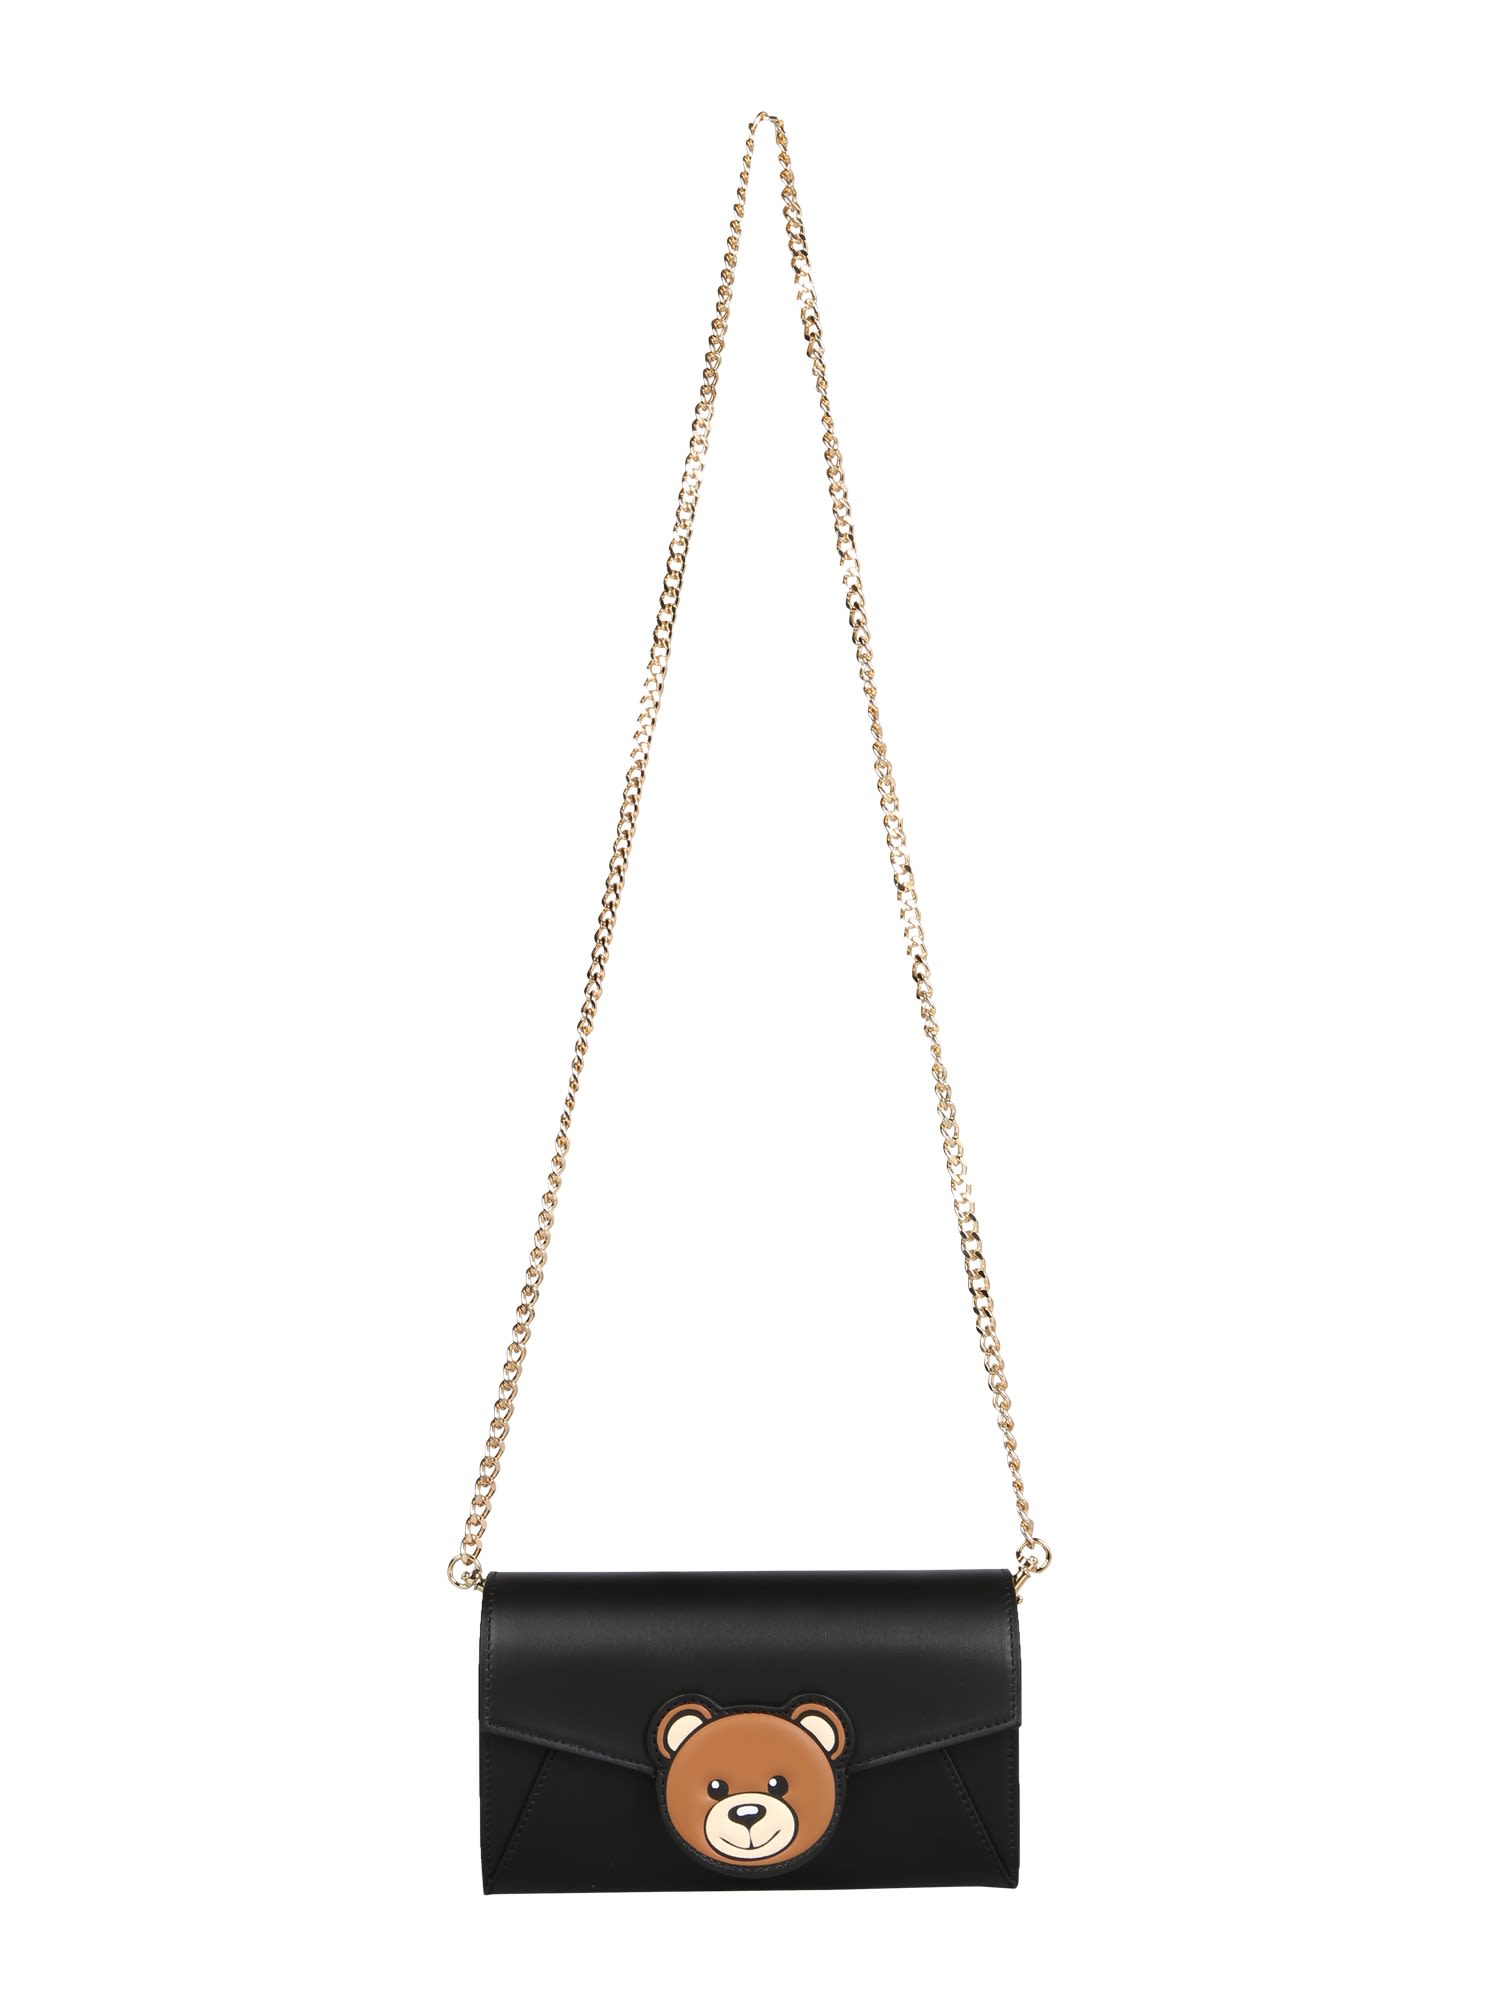 Moschino INSIDE OUT TEDDY CROSSBODY BAG